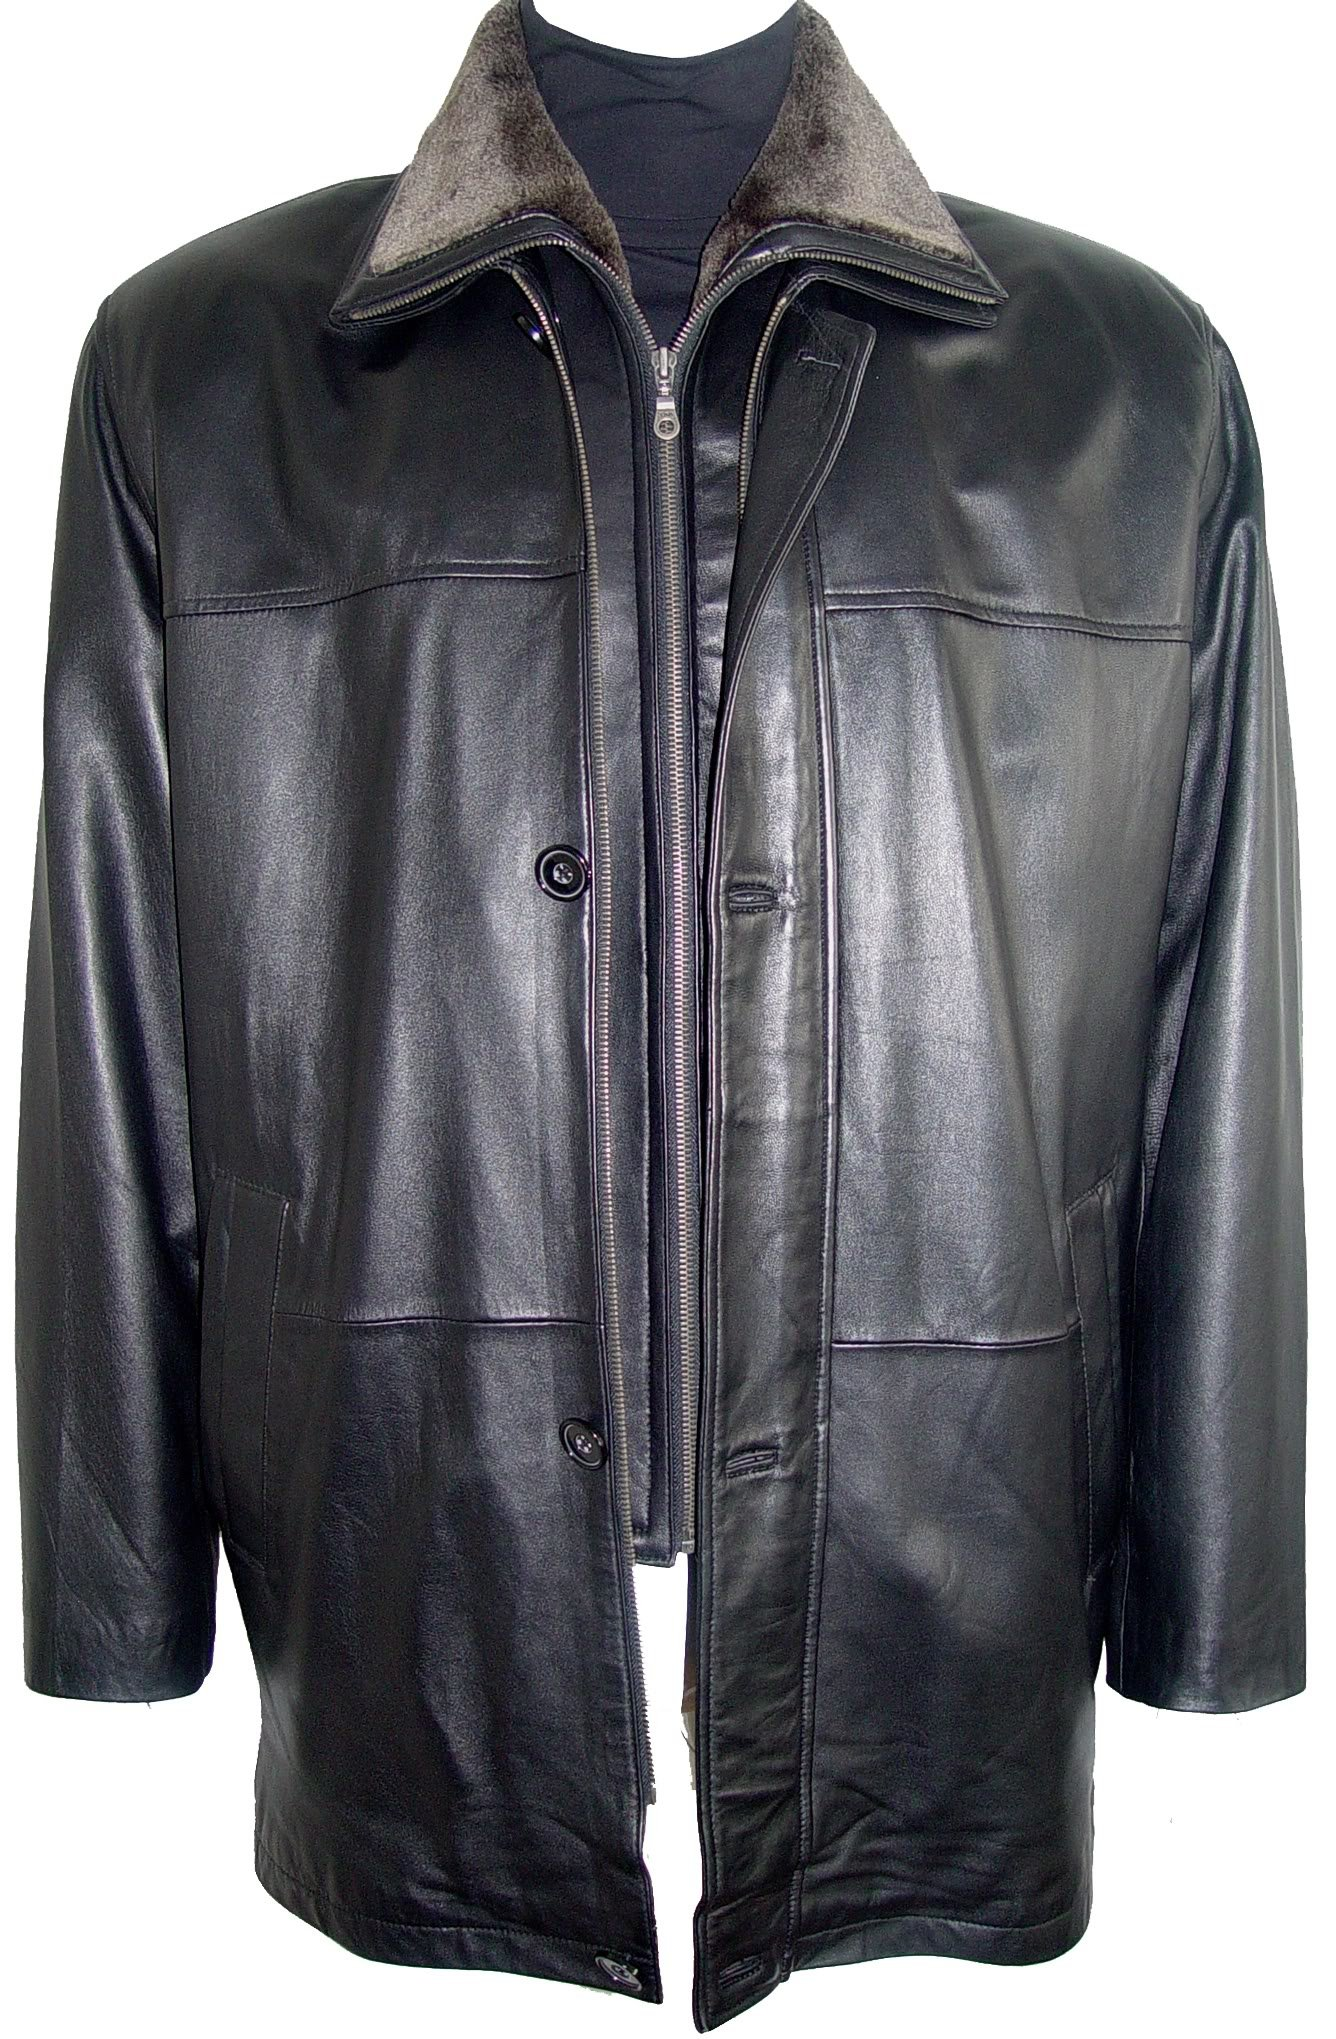 Paccilo 2001 Big Man Leather Jacket Business Clothing Coat Tall and All Size